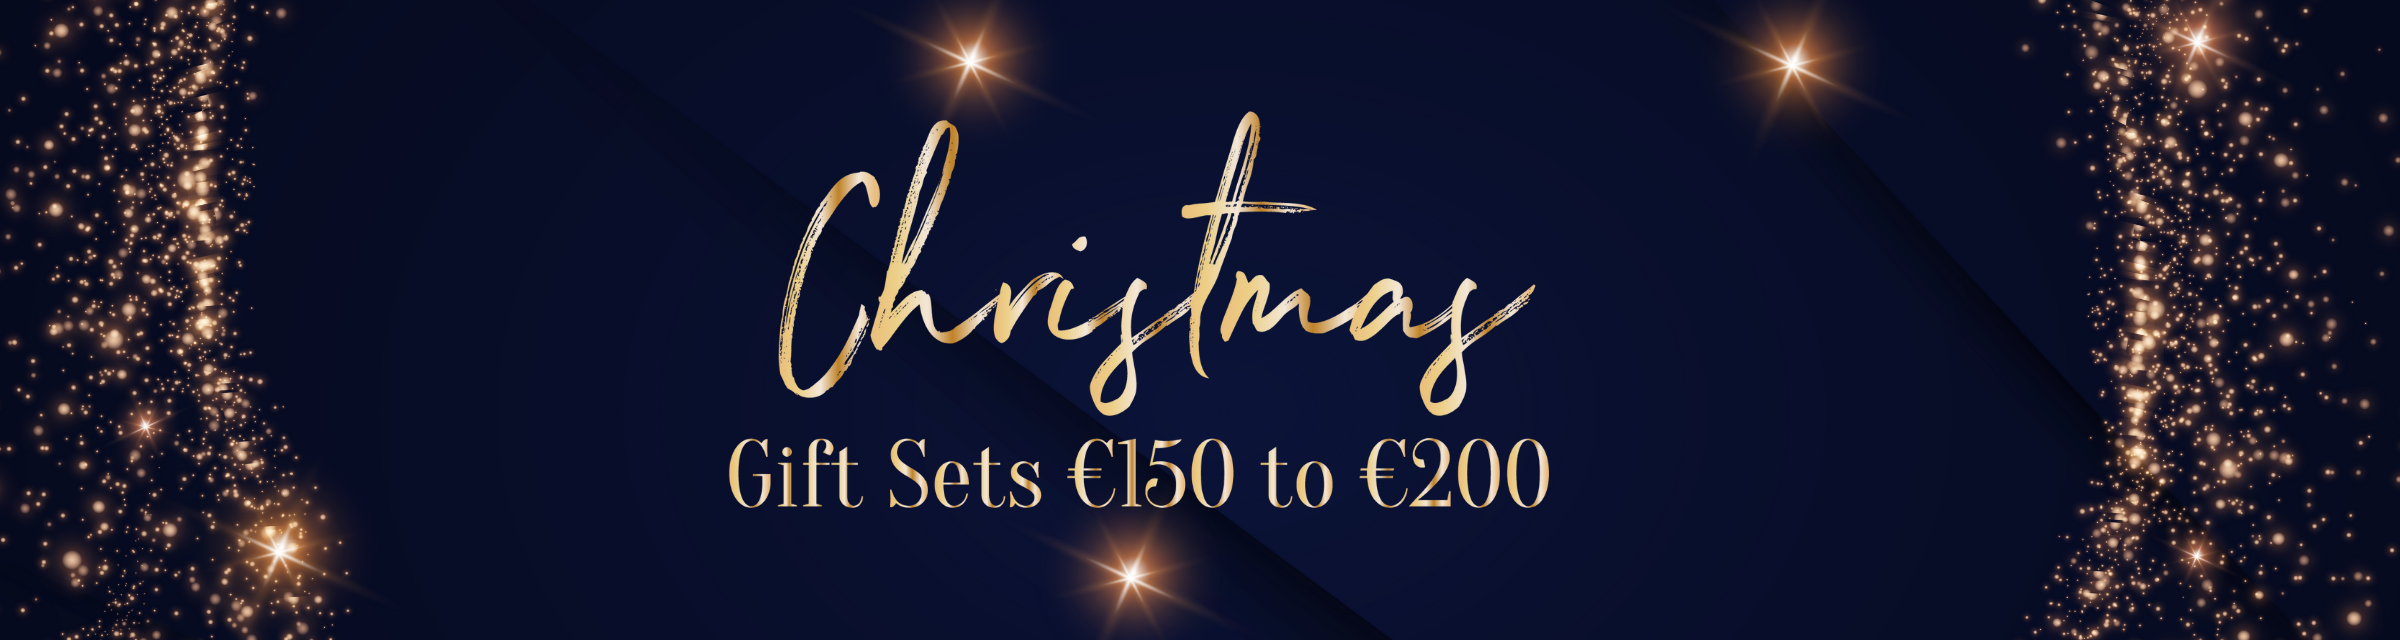 Gift Sets €150 to €200